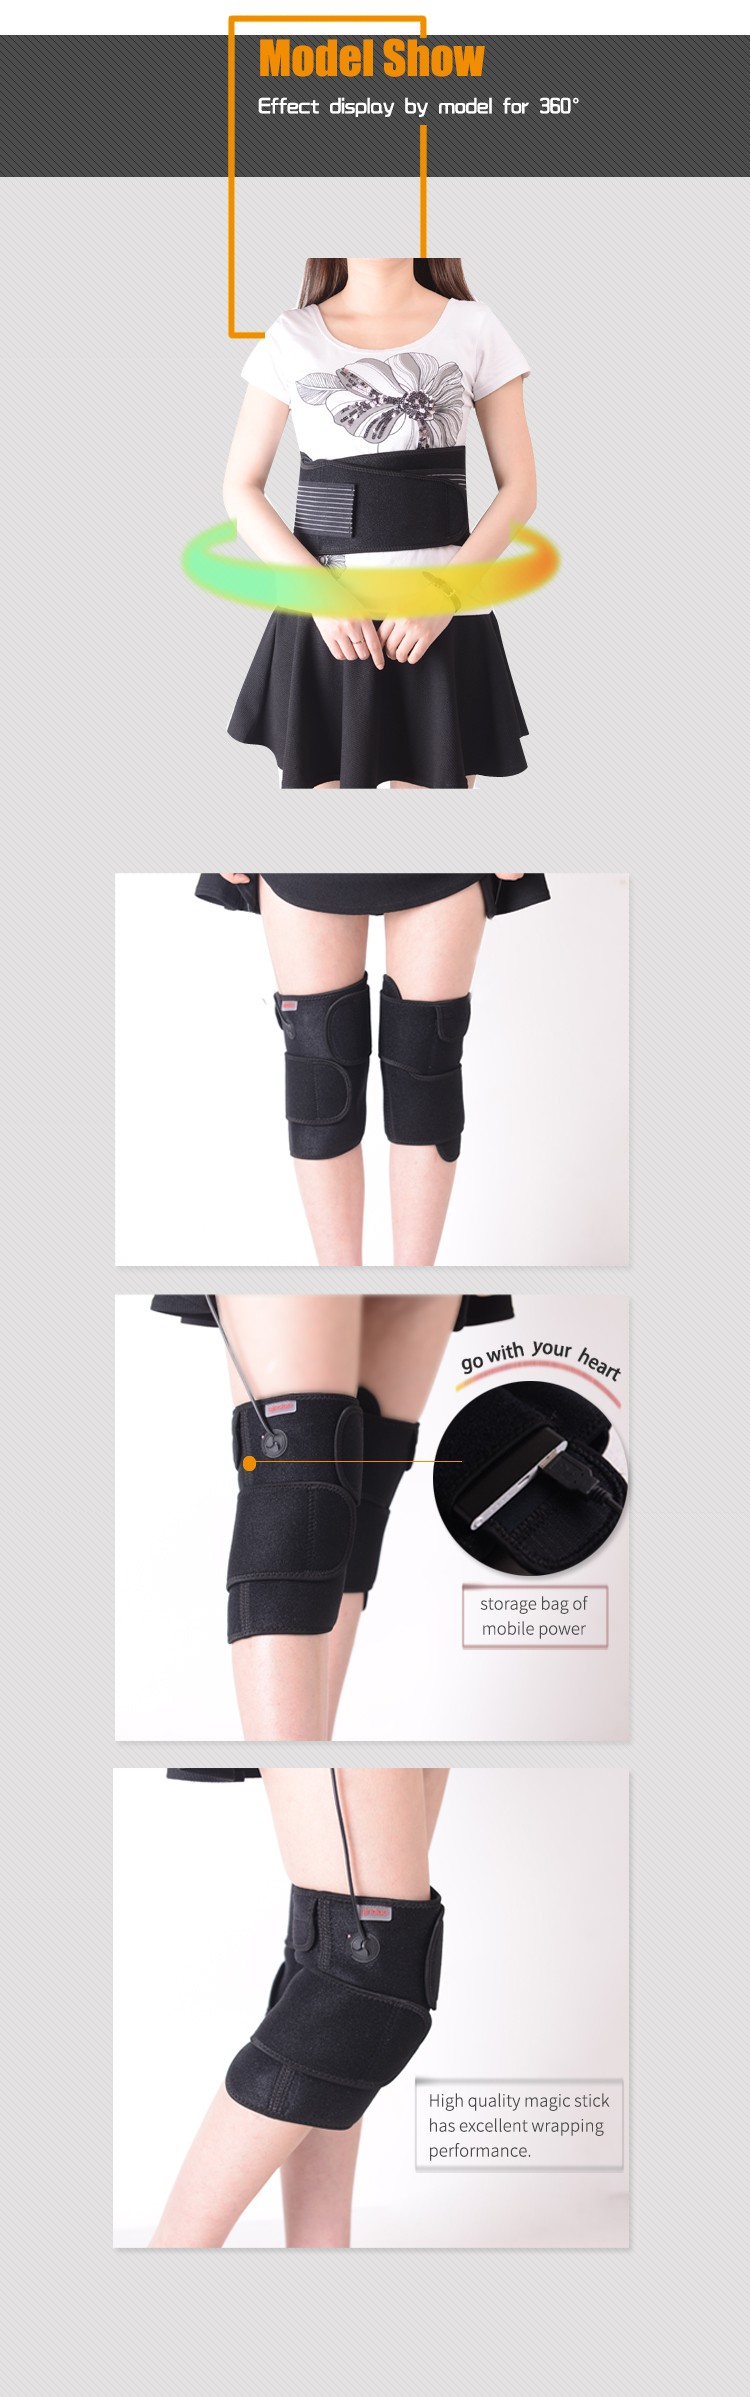 healthcare rechargeable electric heating knee pad with USB port